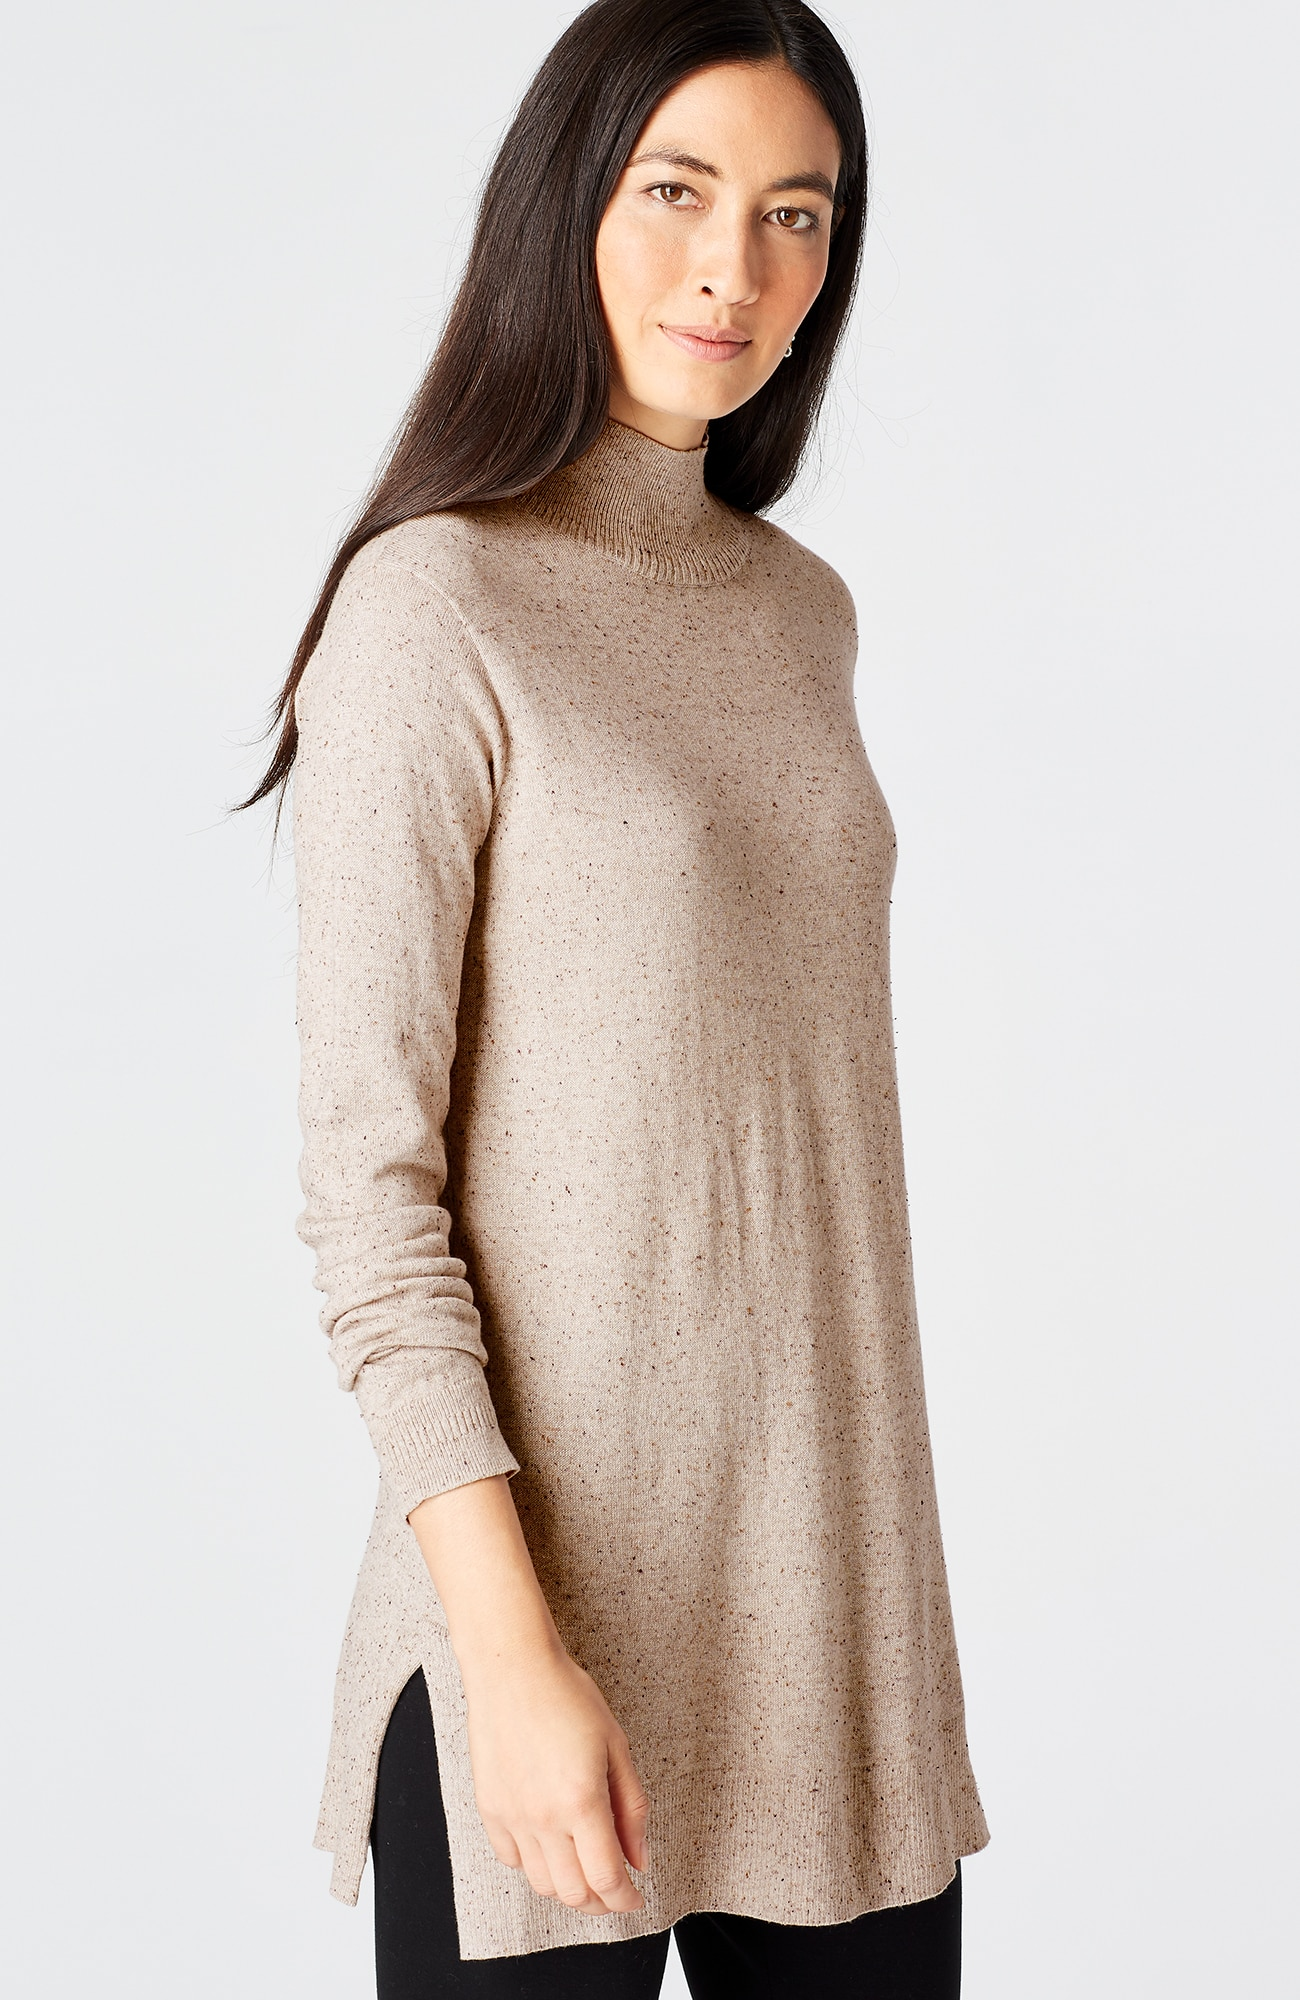 ultrasoft sweater tunic